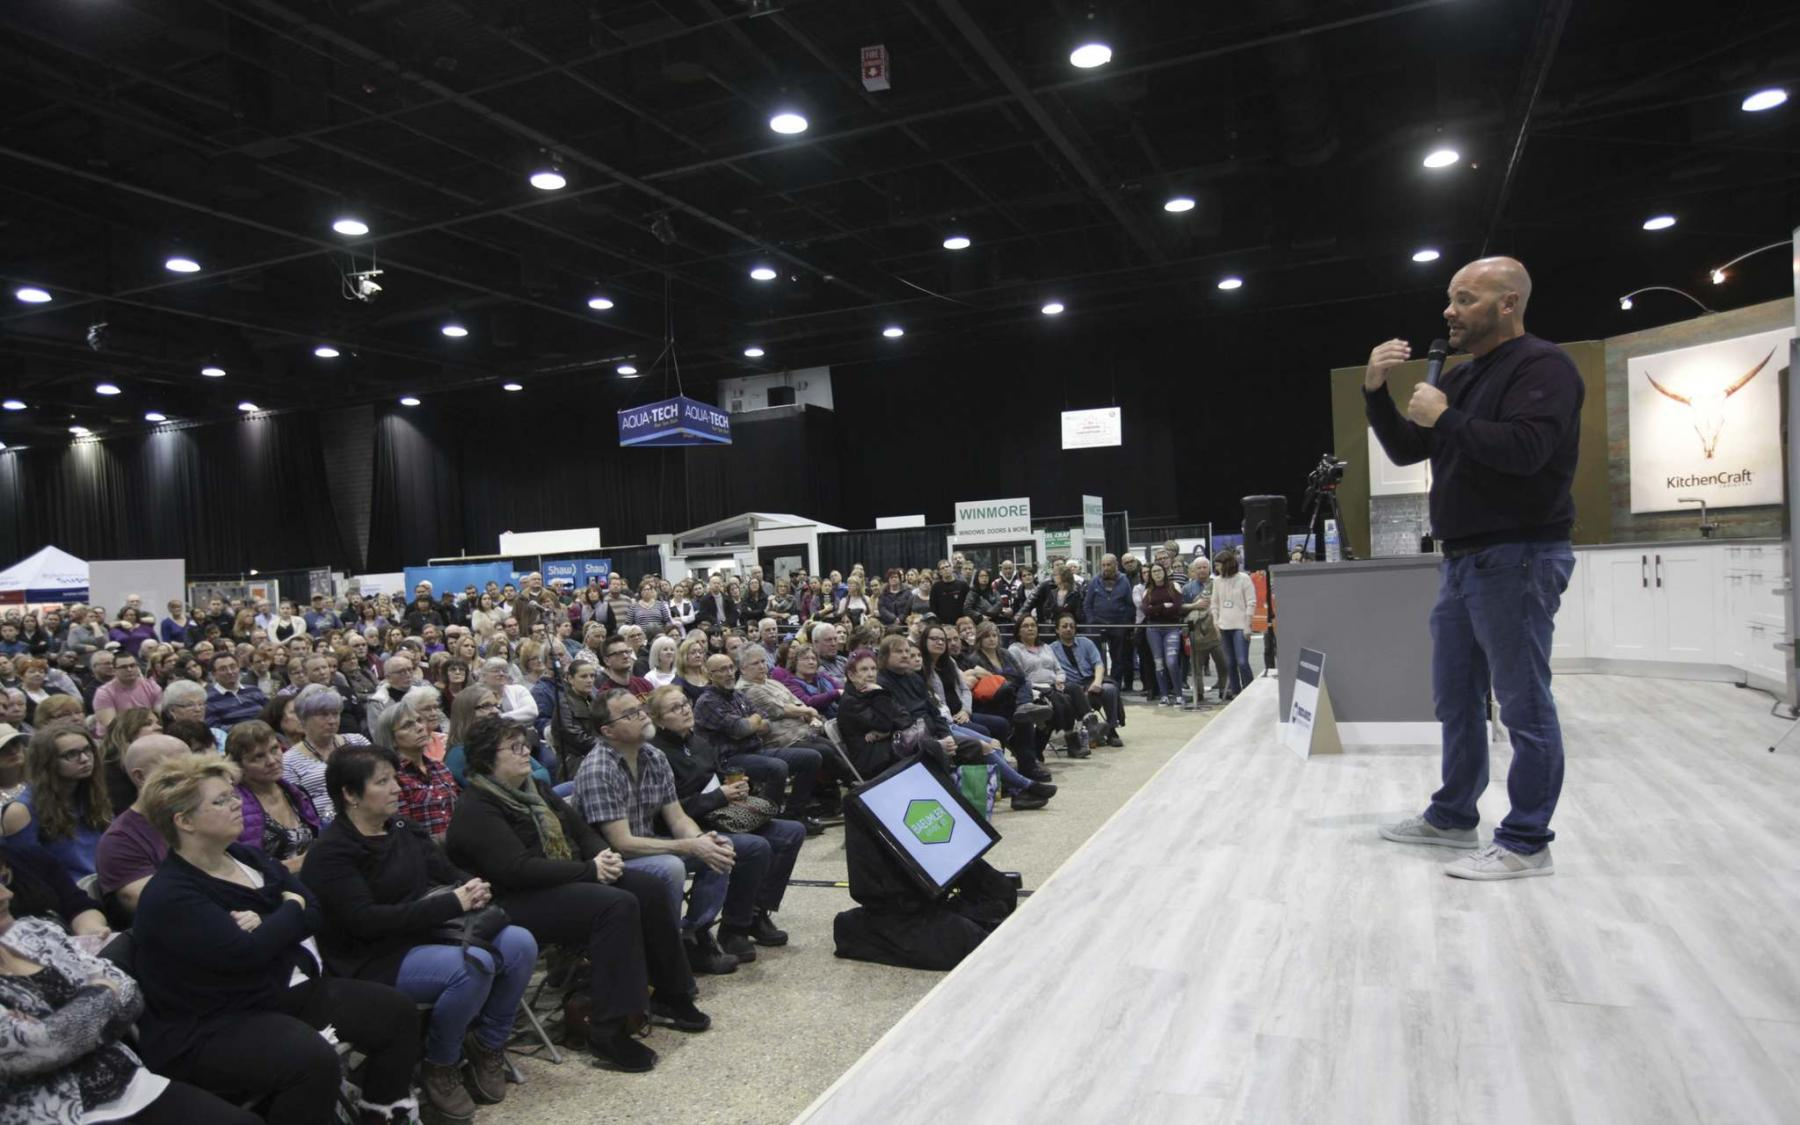 <p>RUTH BONNEVILLE / WINNIPEG FREE PRESS files</p><p>HGTV star Bryan Baeumler will be one of many special guest speakers at this year&rsquo;s Winnipeg Renovation Show.</p>